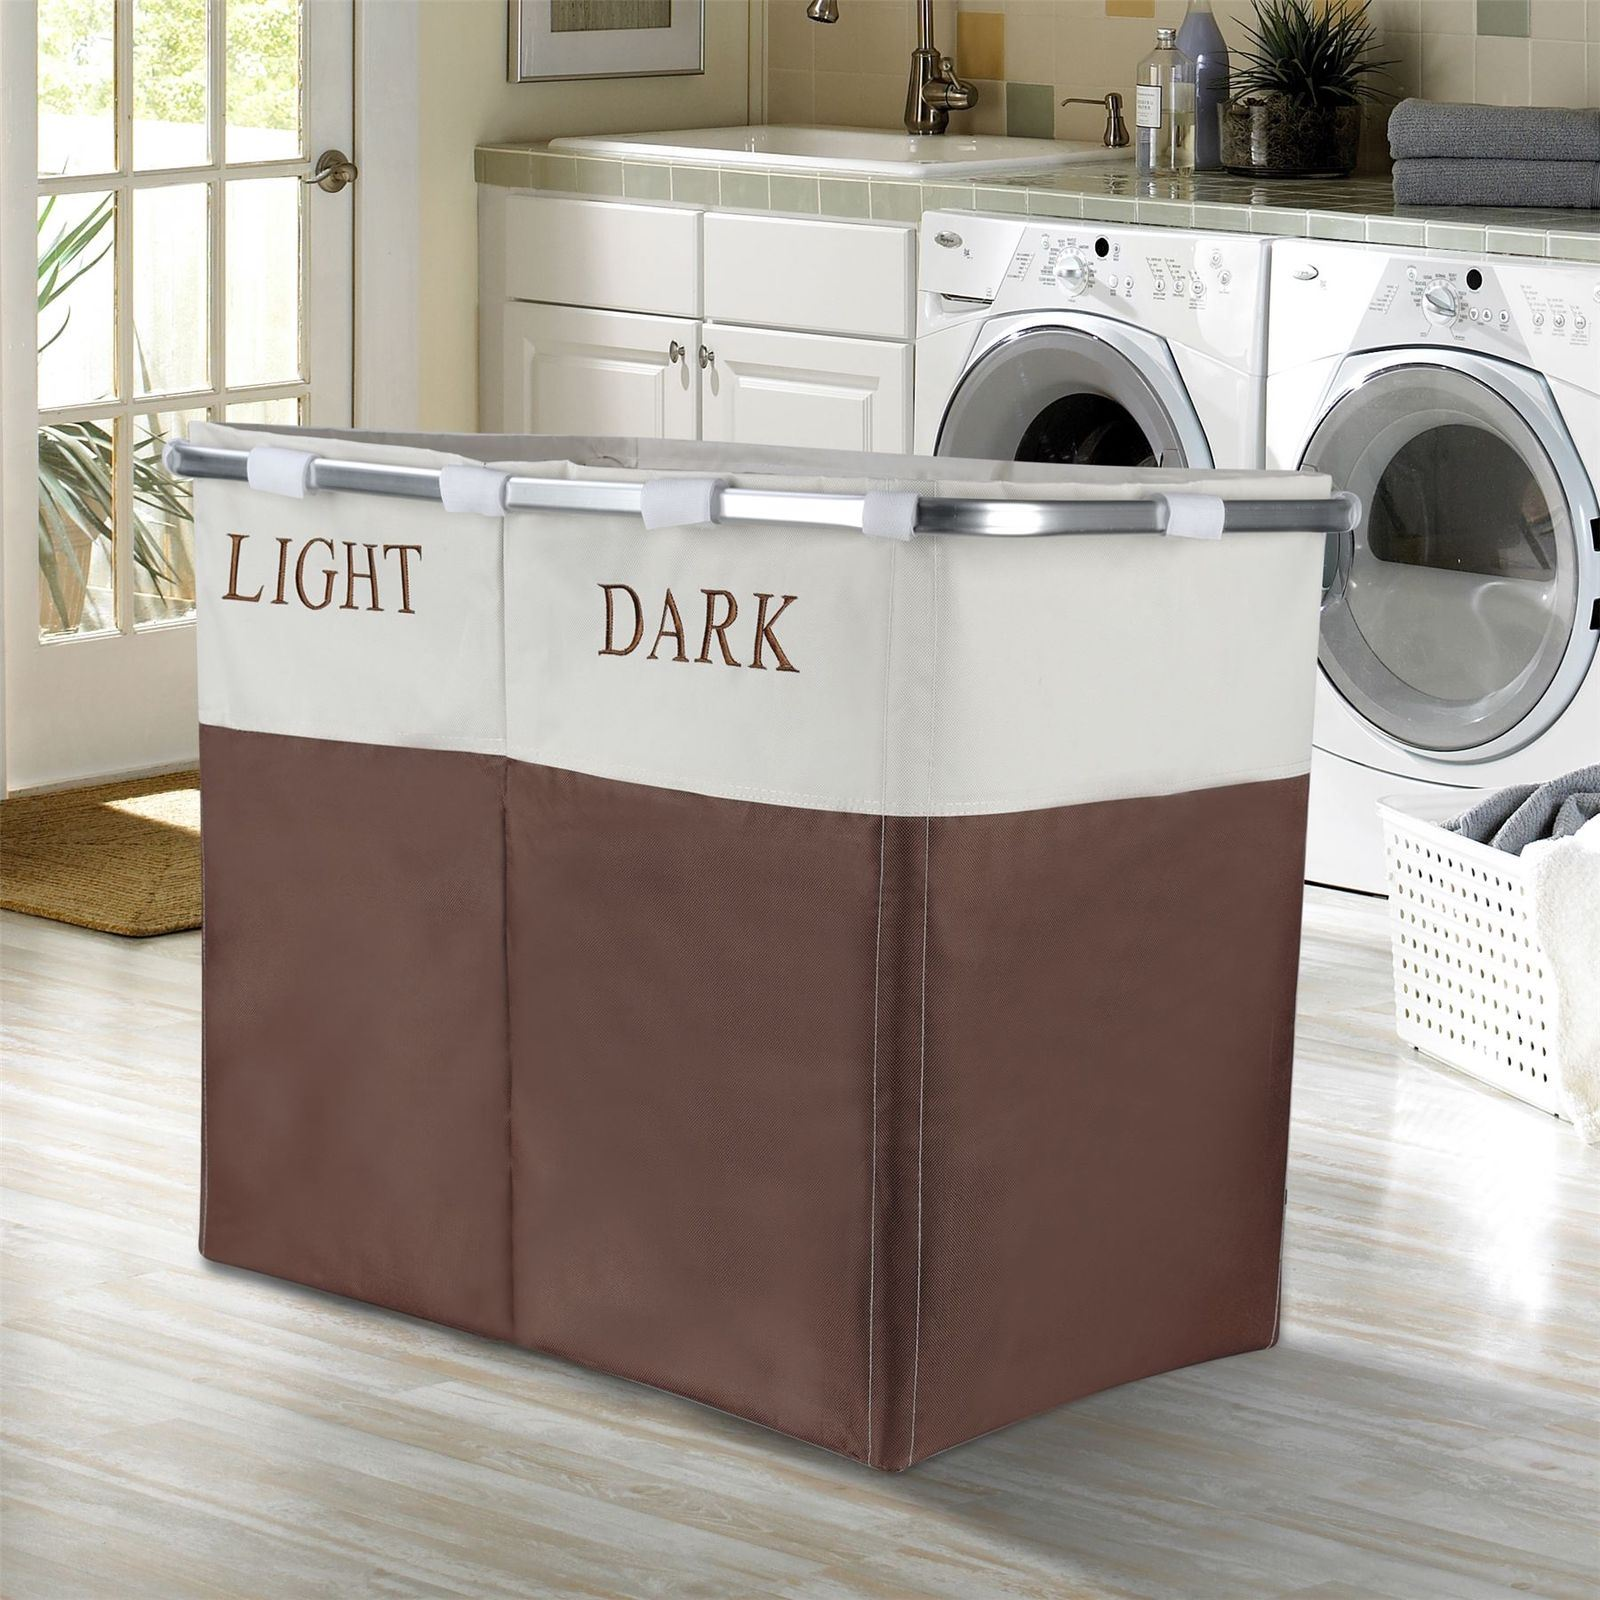 4 Compartment Laundry Basket Vinsani Light And Dark 2 Section Folding Laundry Sorter